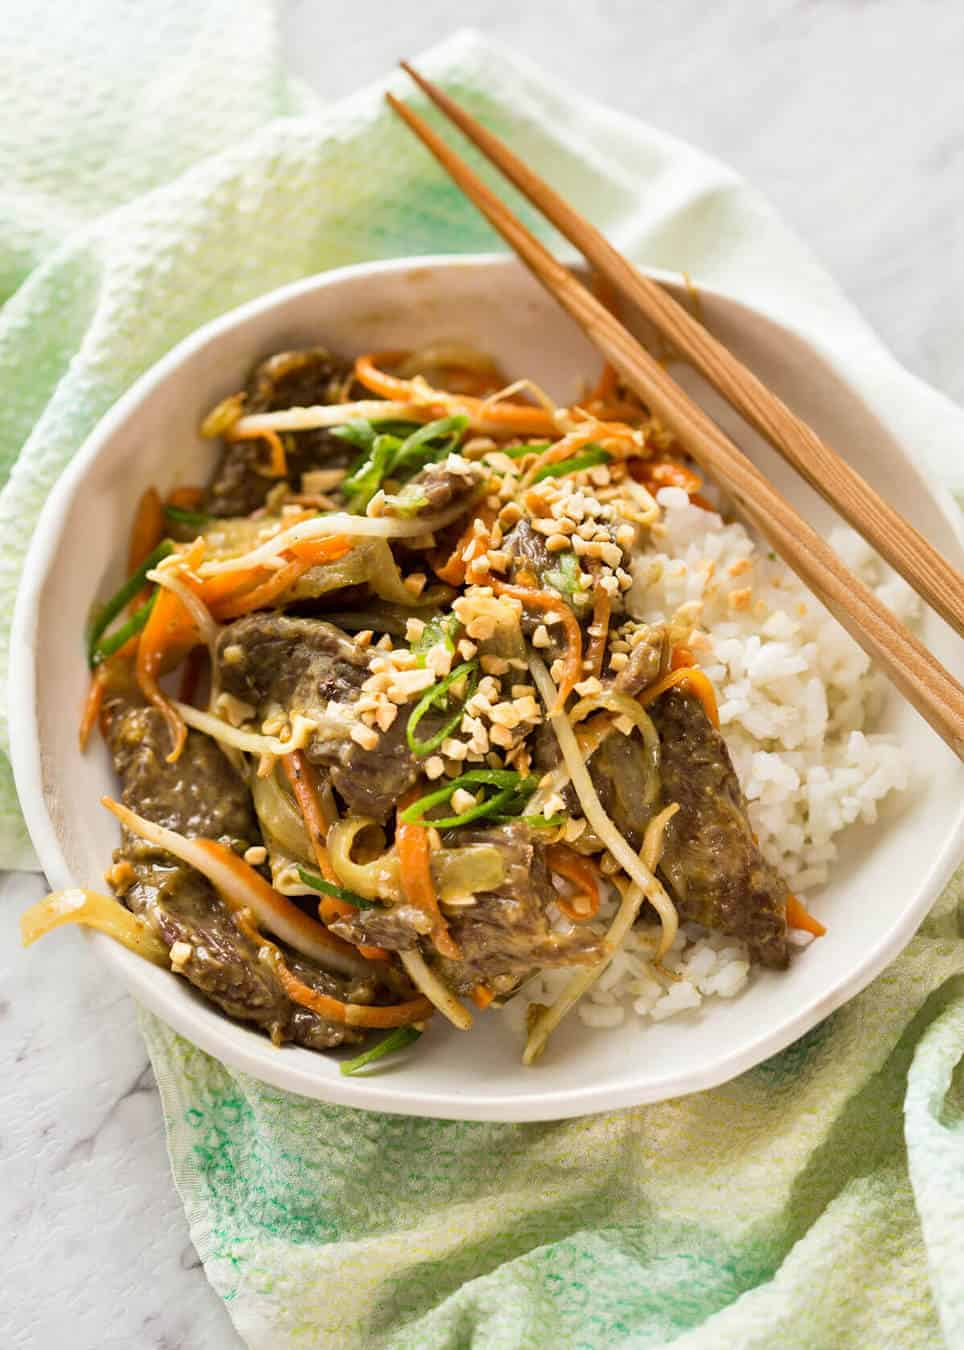 This Satay Peanut Stir Fry is almost too good to be true - it's SO FAST and SO EASY and tastes incredible! www.recipetineats.com